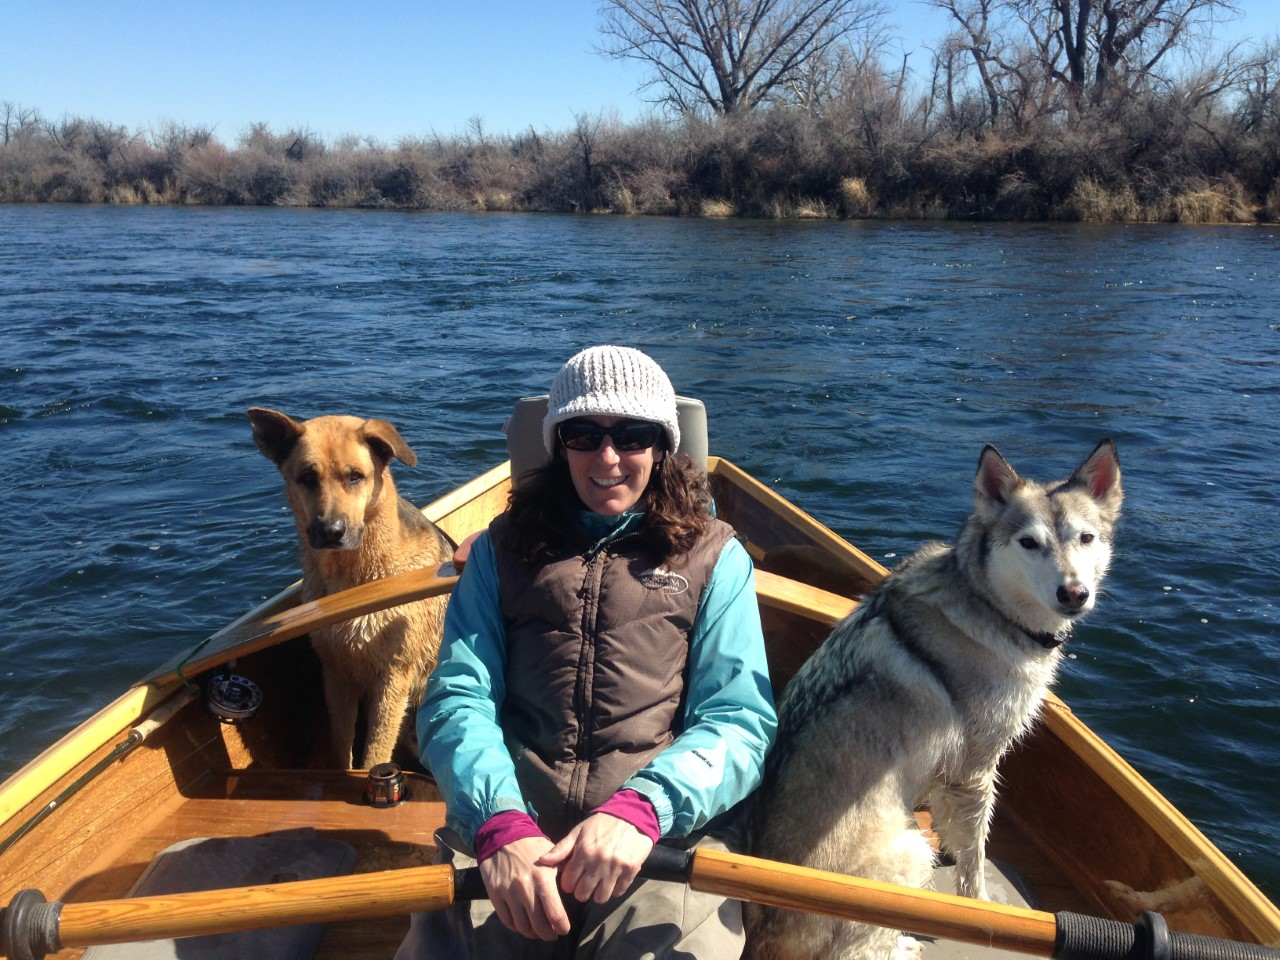 Katie Steele - Your river guide